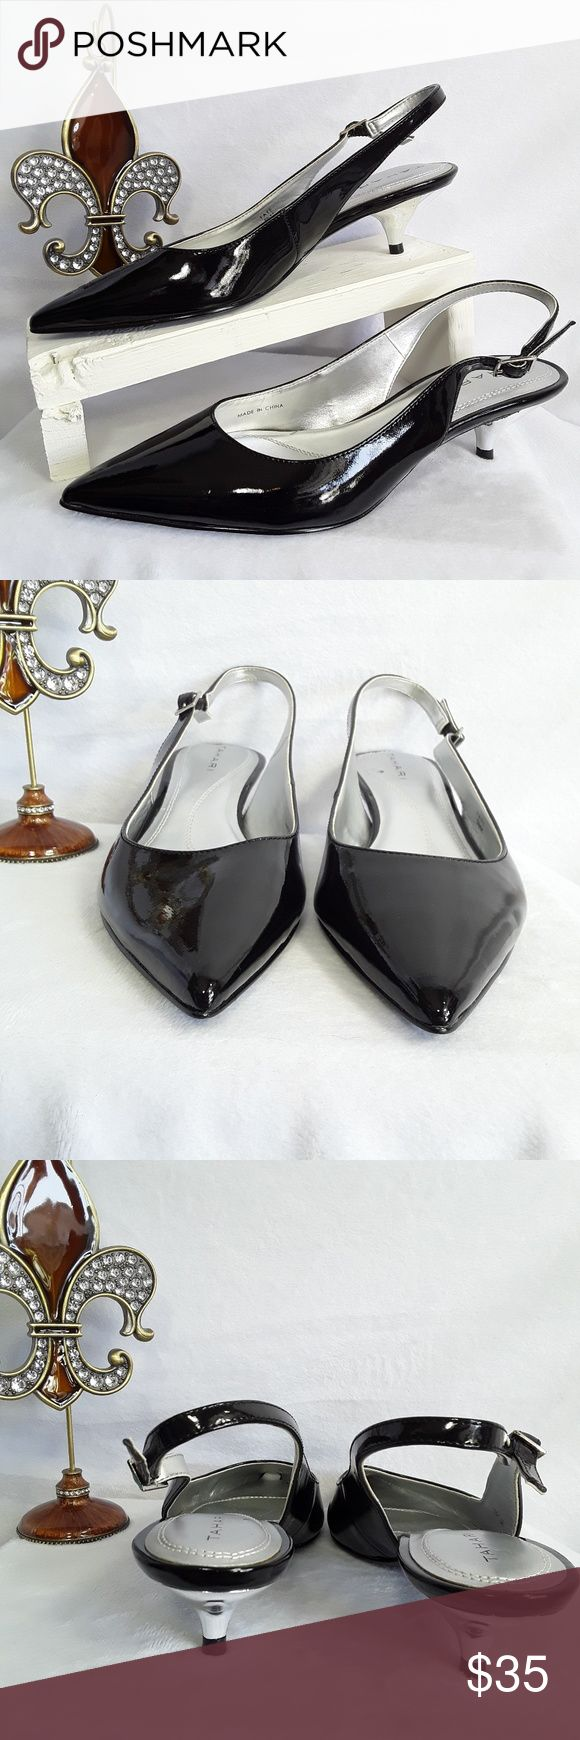 💐Tahari Faye Black Patent Leather Slingback Shoes Tahari Faye Slingback Kitten Heel Pumps Patent Black Silver Women's Size 5.5 M   Excellent Condition.  Size 5.5 M.  Pointed toe.  Silver kitten heel.  Synthetic uppers.  Manmade sole Adjustable buckle.  Please look at all pictures for condition.  Tahari Shoes Heels